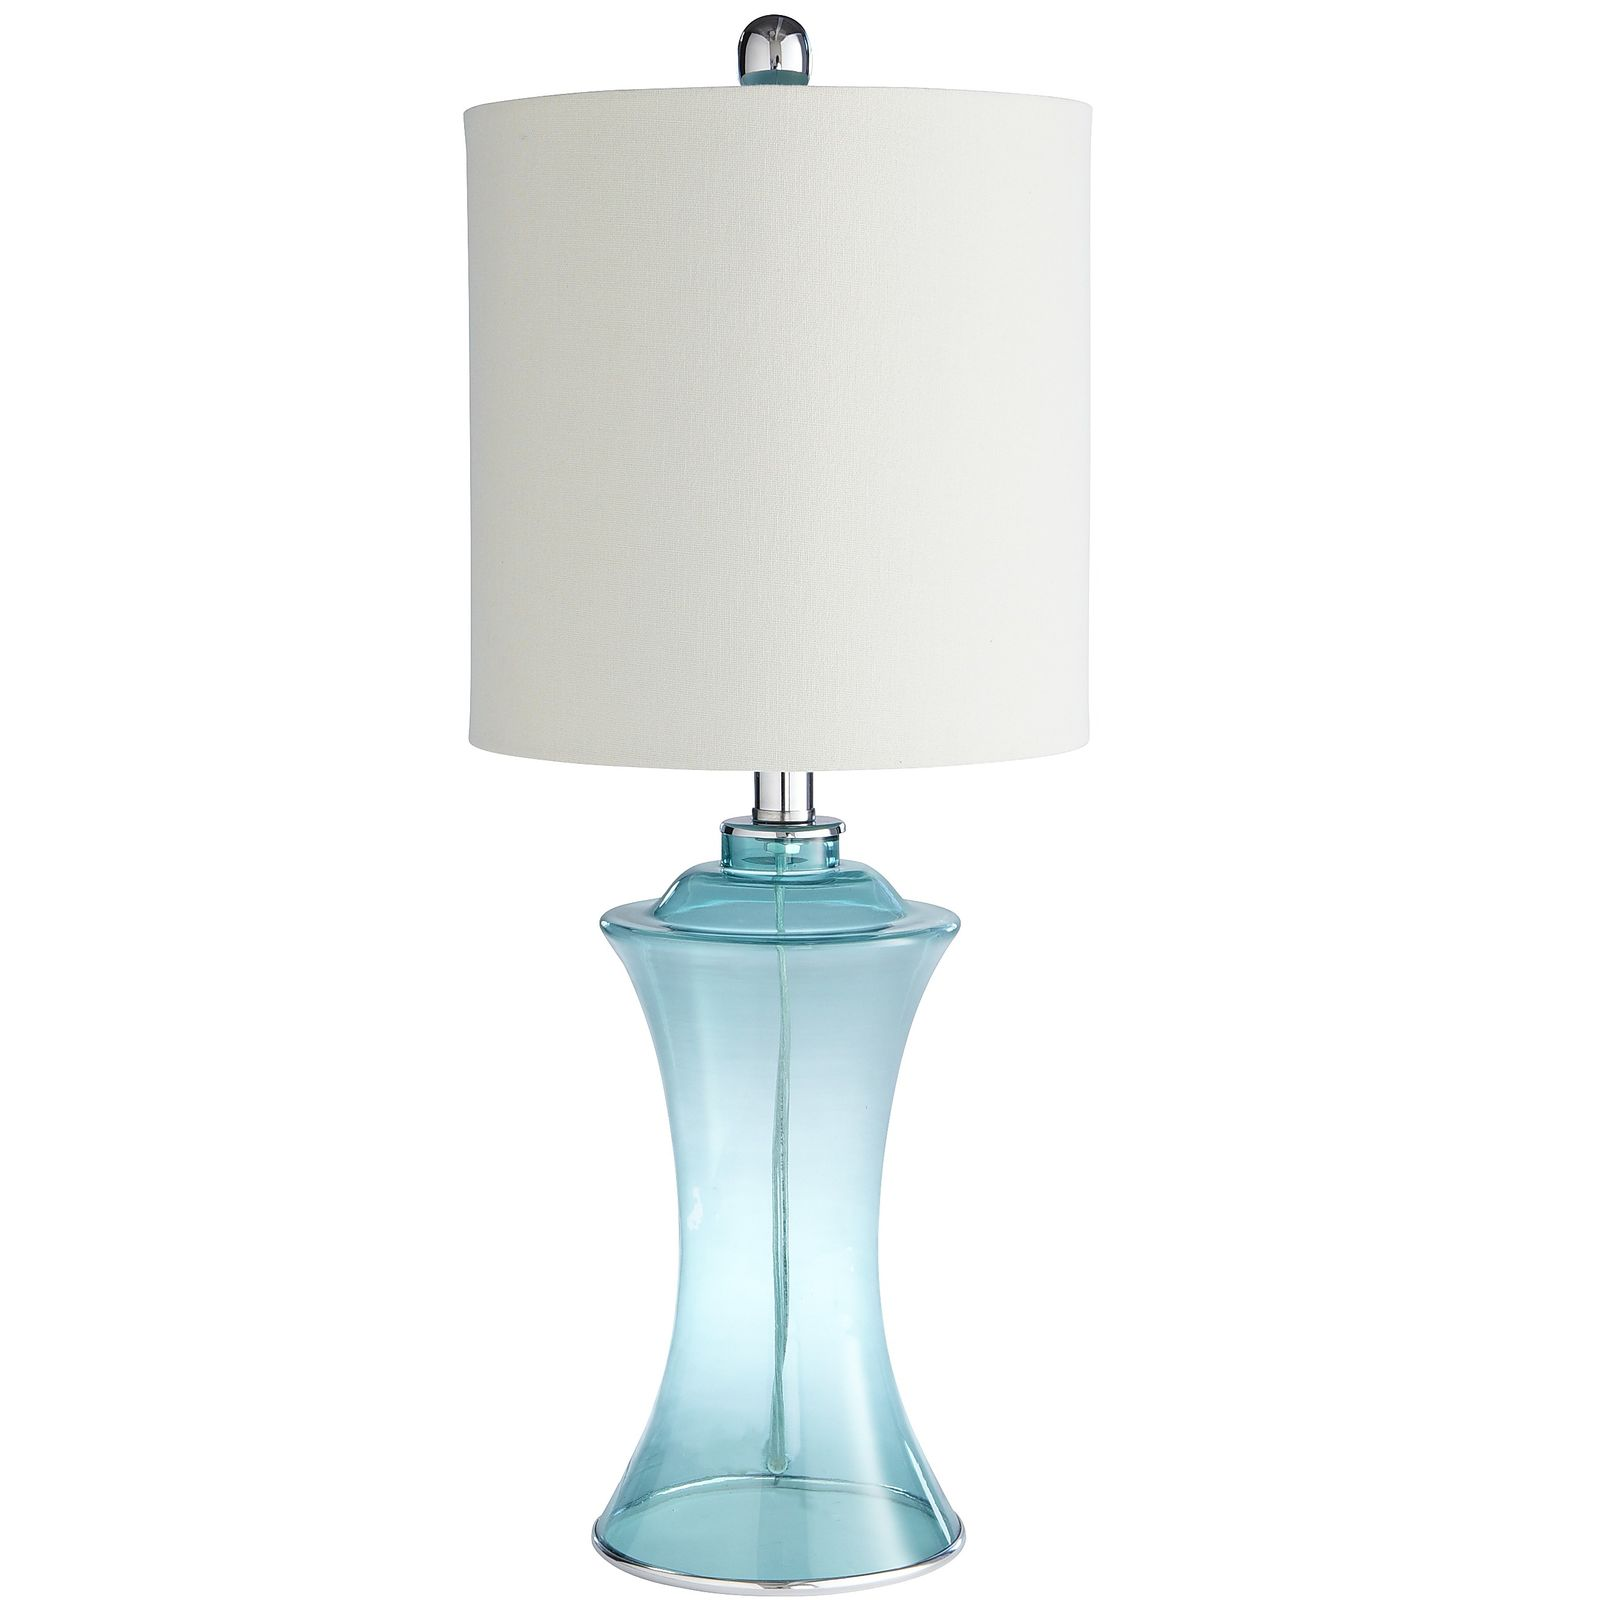 House Table Lamp Sea Glass Table Lamp 10 Household Items For Every House